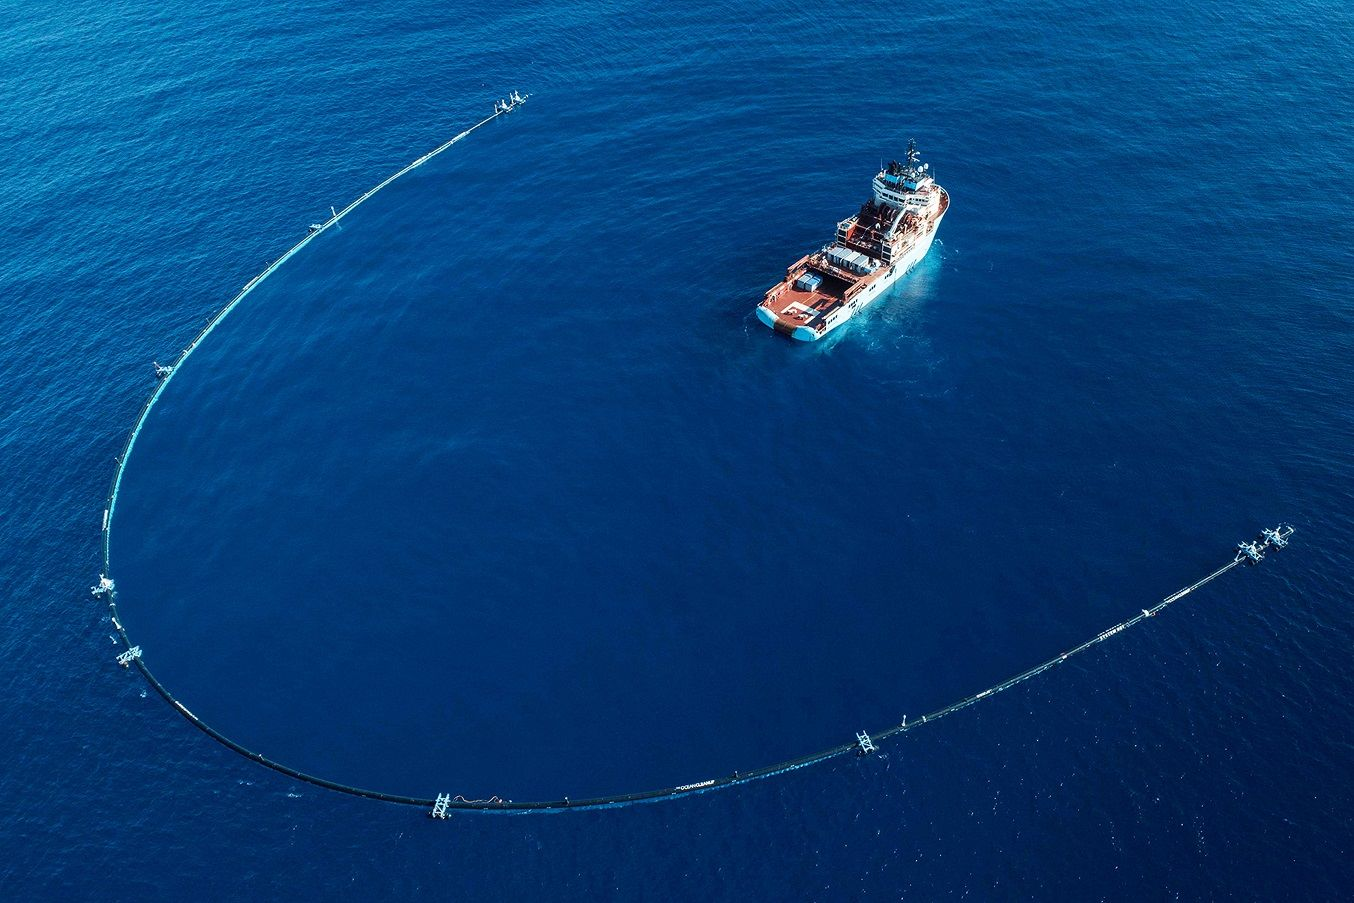 How To Get Rid Of The Great Pacific Garbage Patch